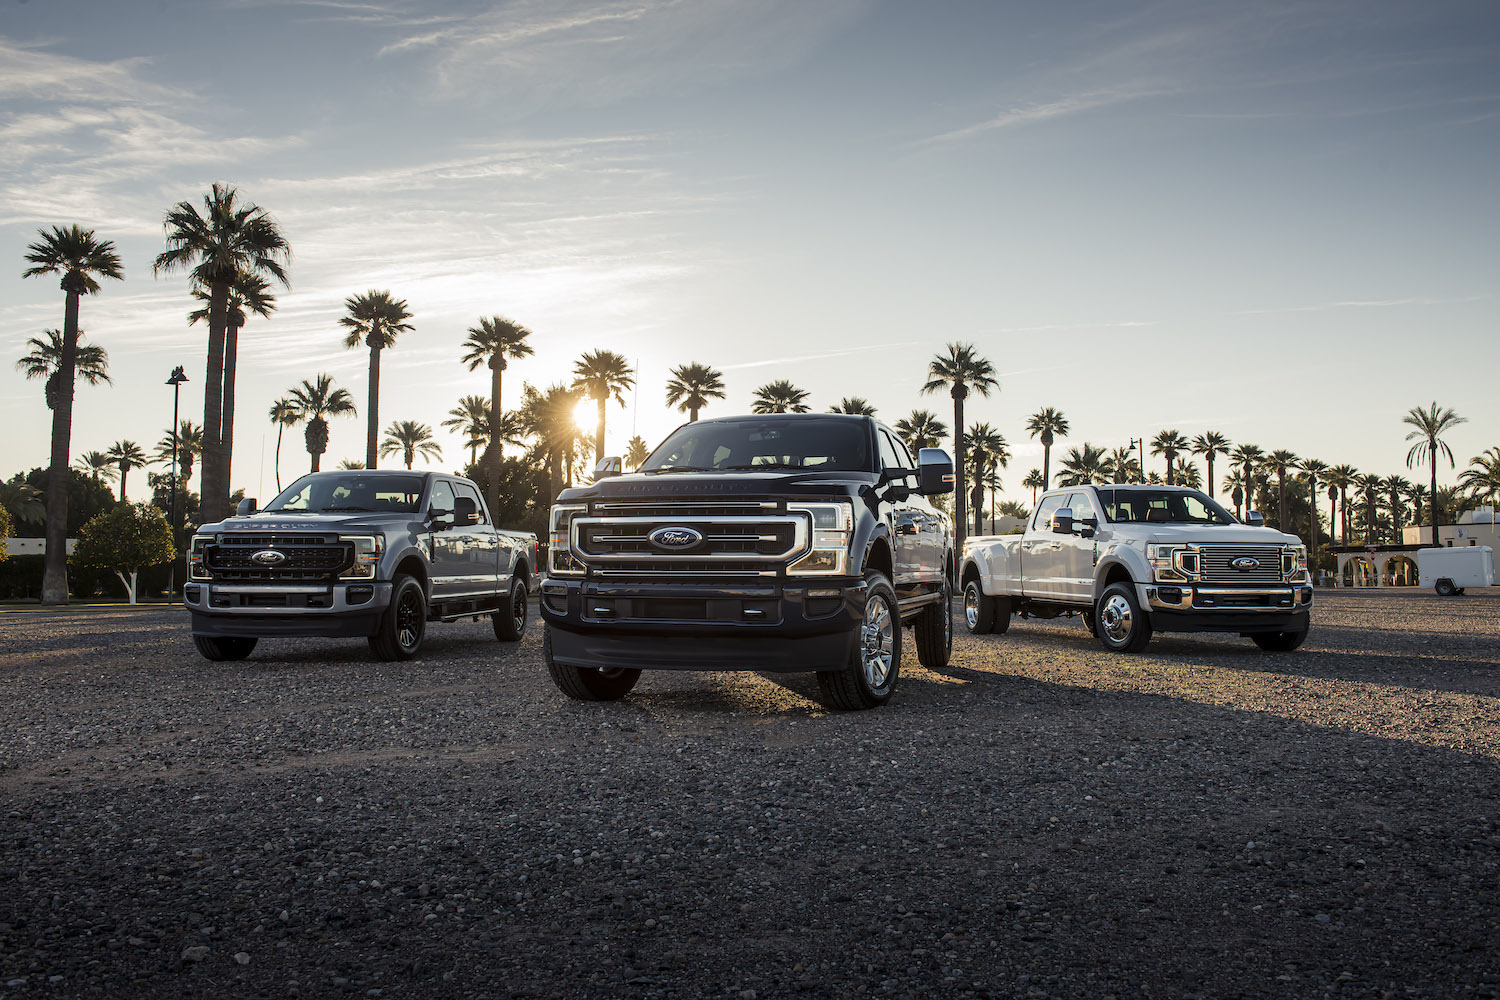 three super duty trucks in front of palm trees